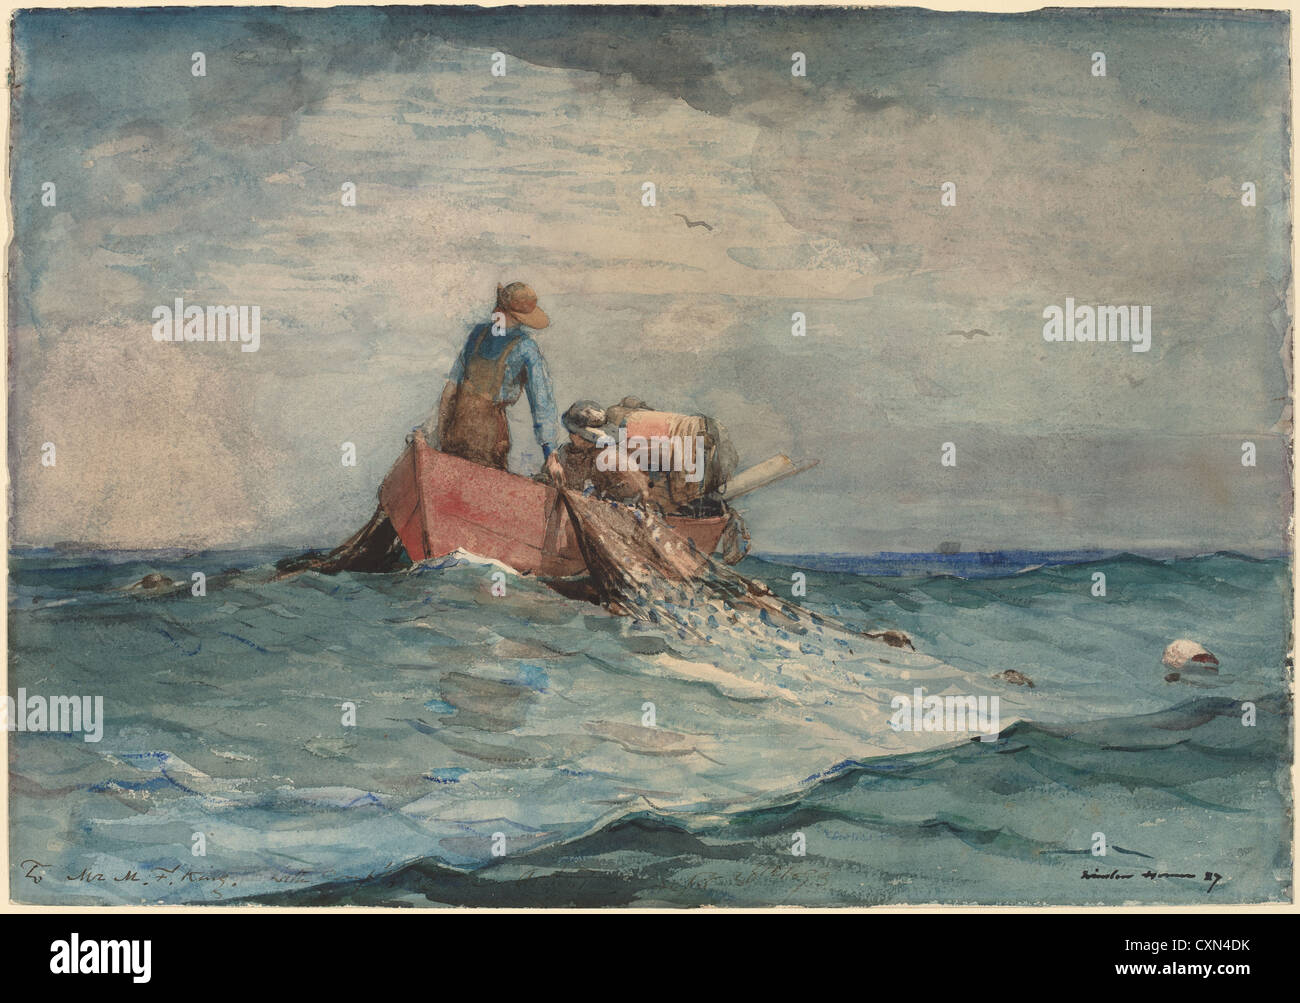 Winslow Homer, Hauling in the Nets, American, 1836 - 1910, 1887, watercolor over graphite - Stock Image